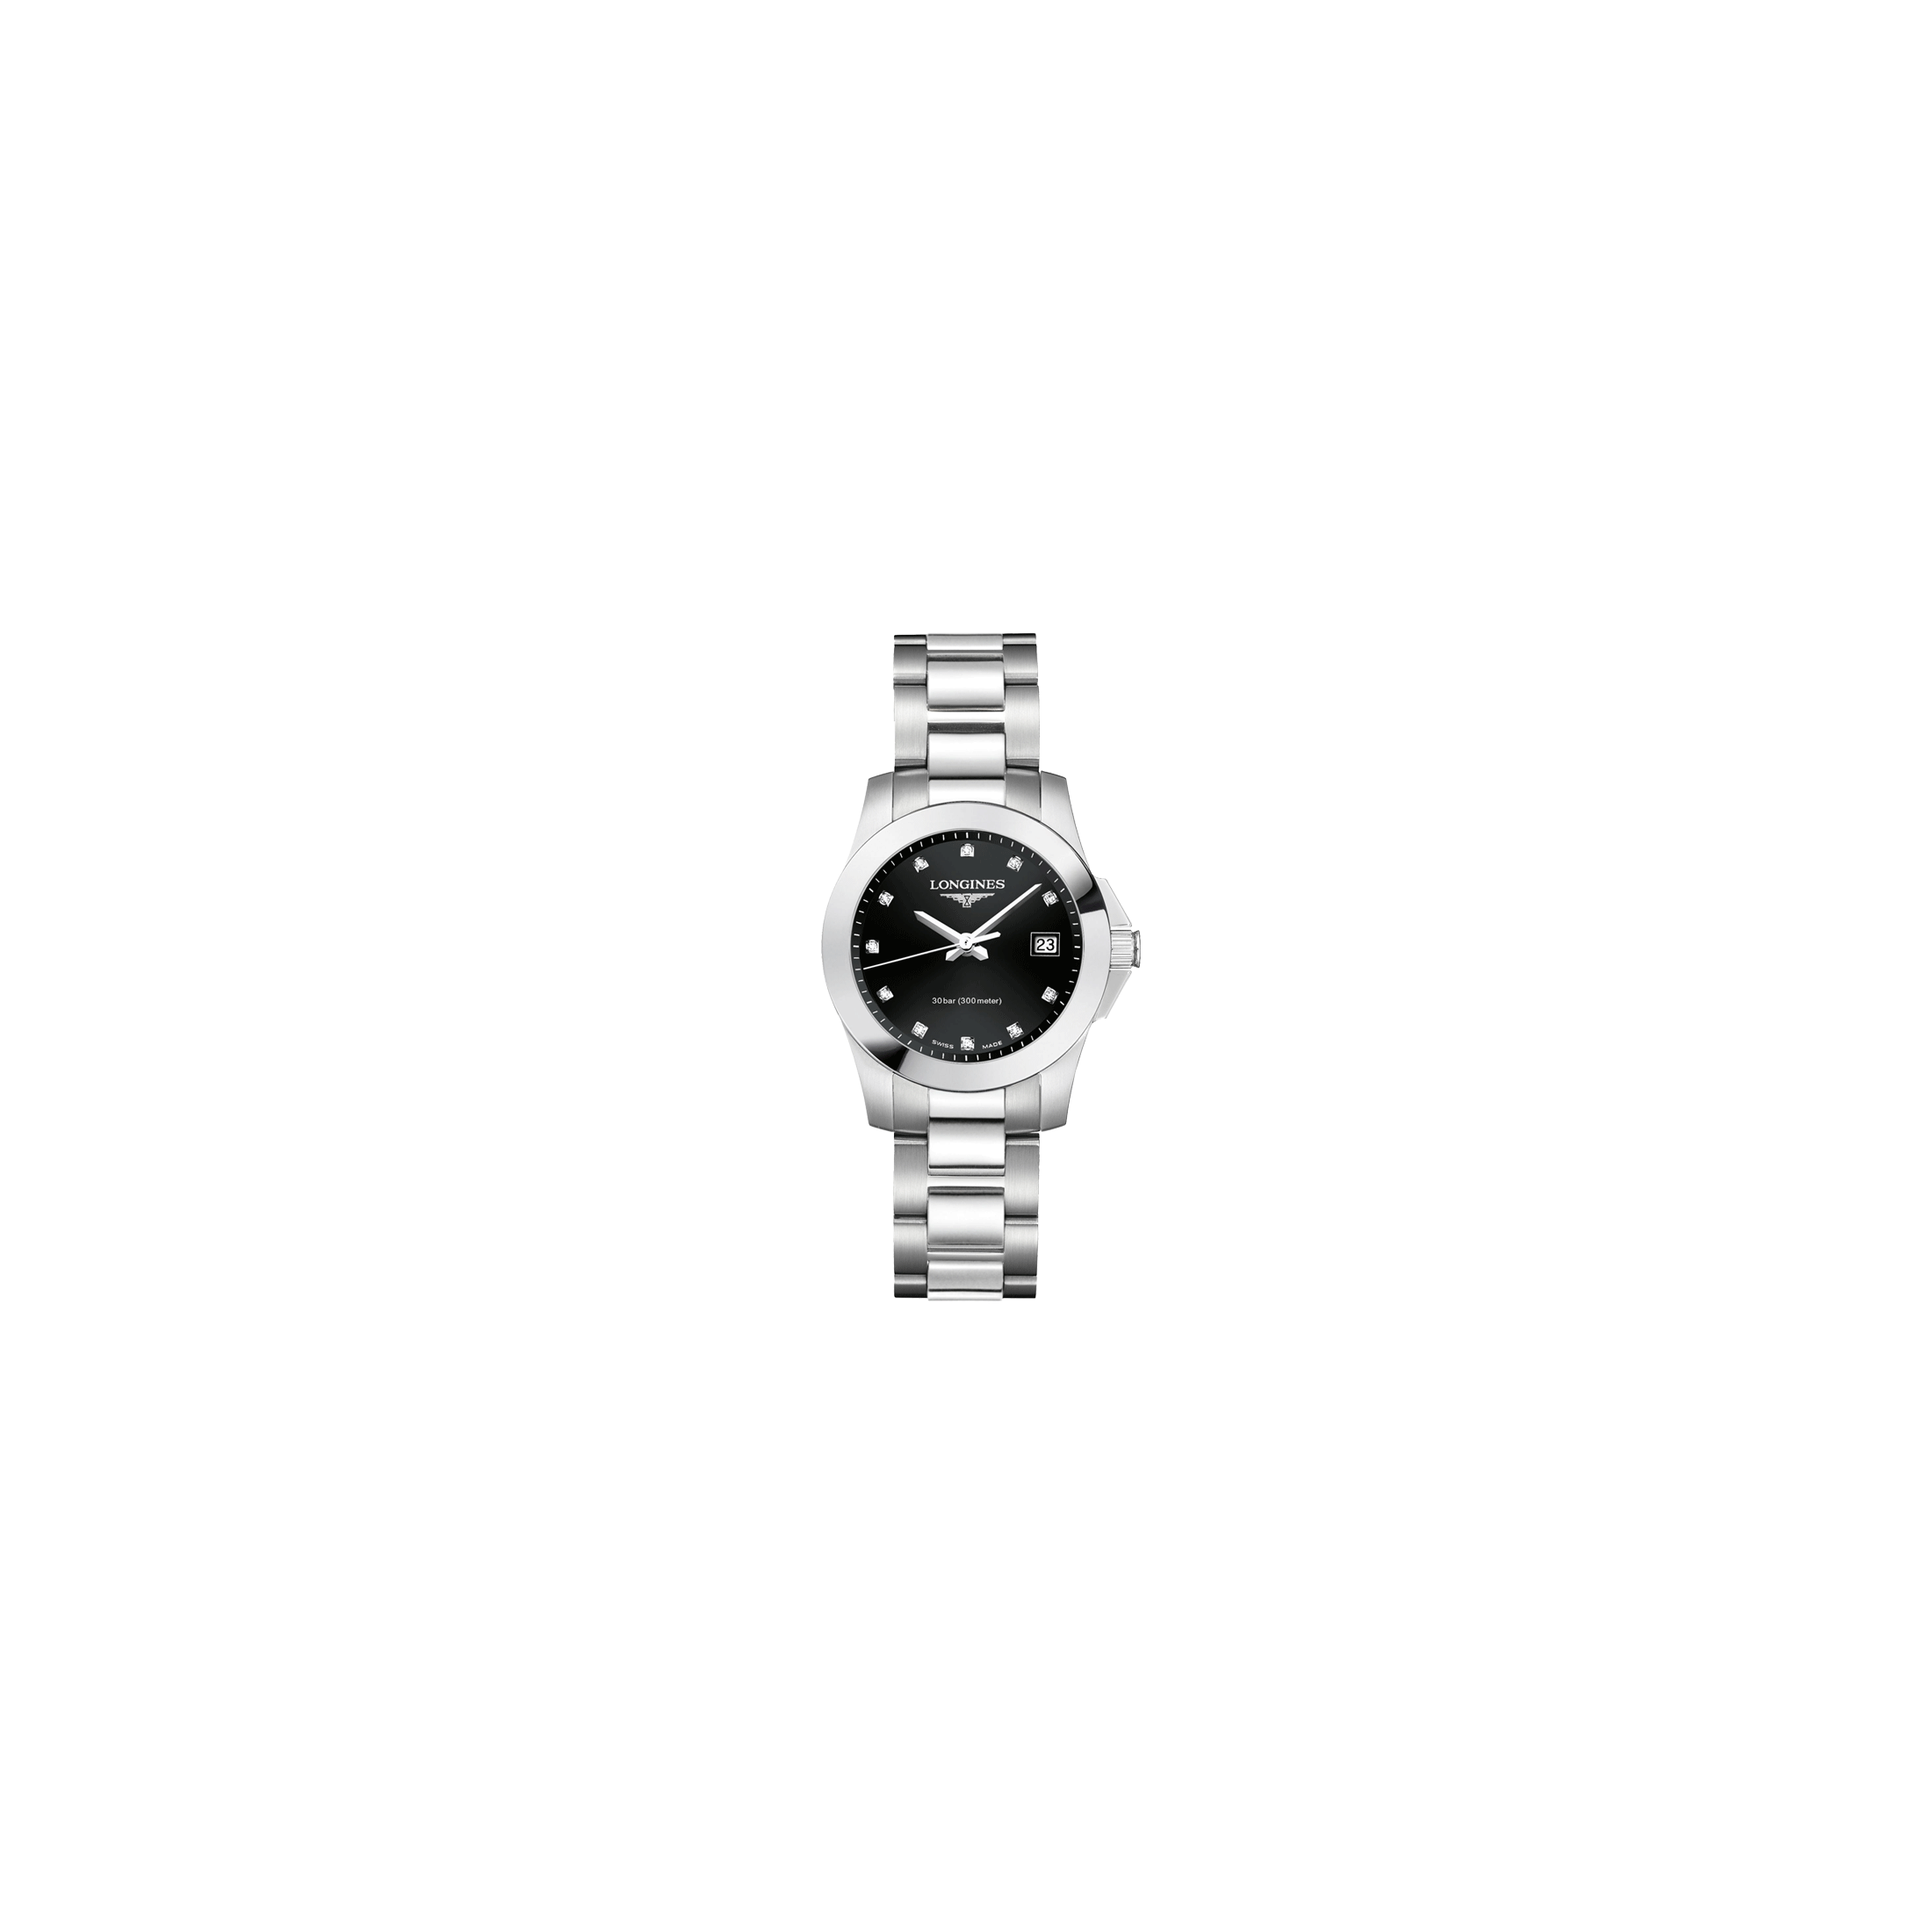 Montre Longines Conquest quartz cadran noir index diamants bracelet acier 29,5 mm - SOLDAT PL